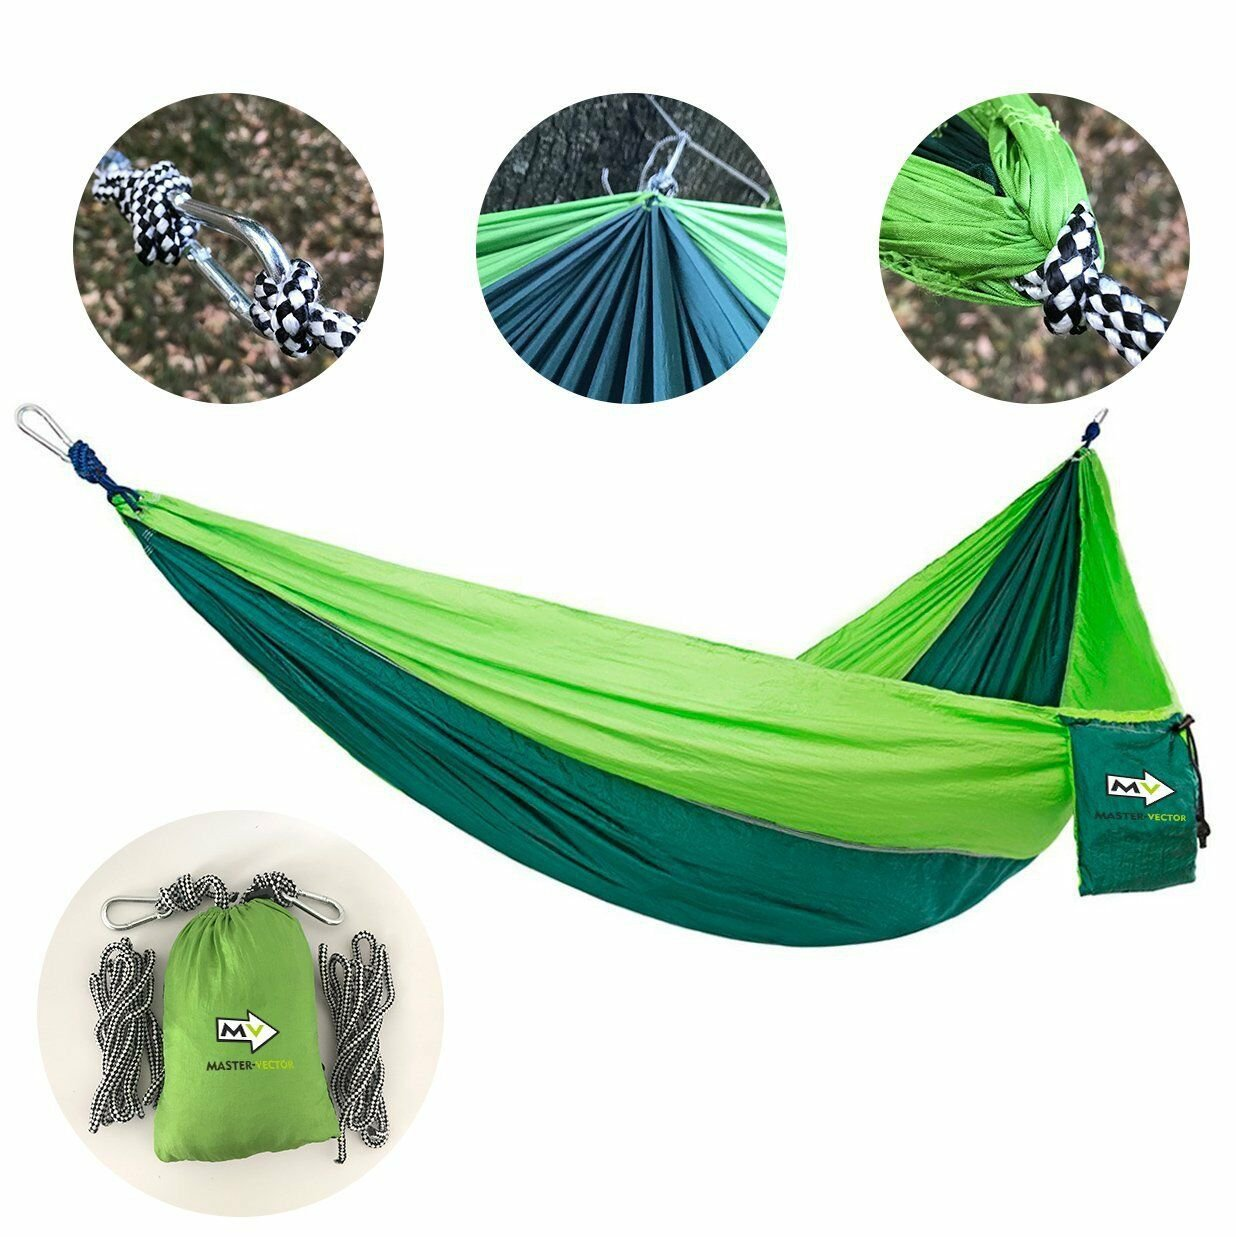 Hammock Stong Easy And Comfortable Outdoor Relax Green Color